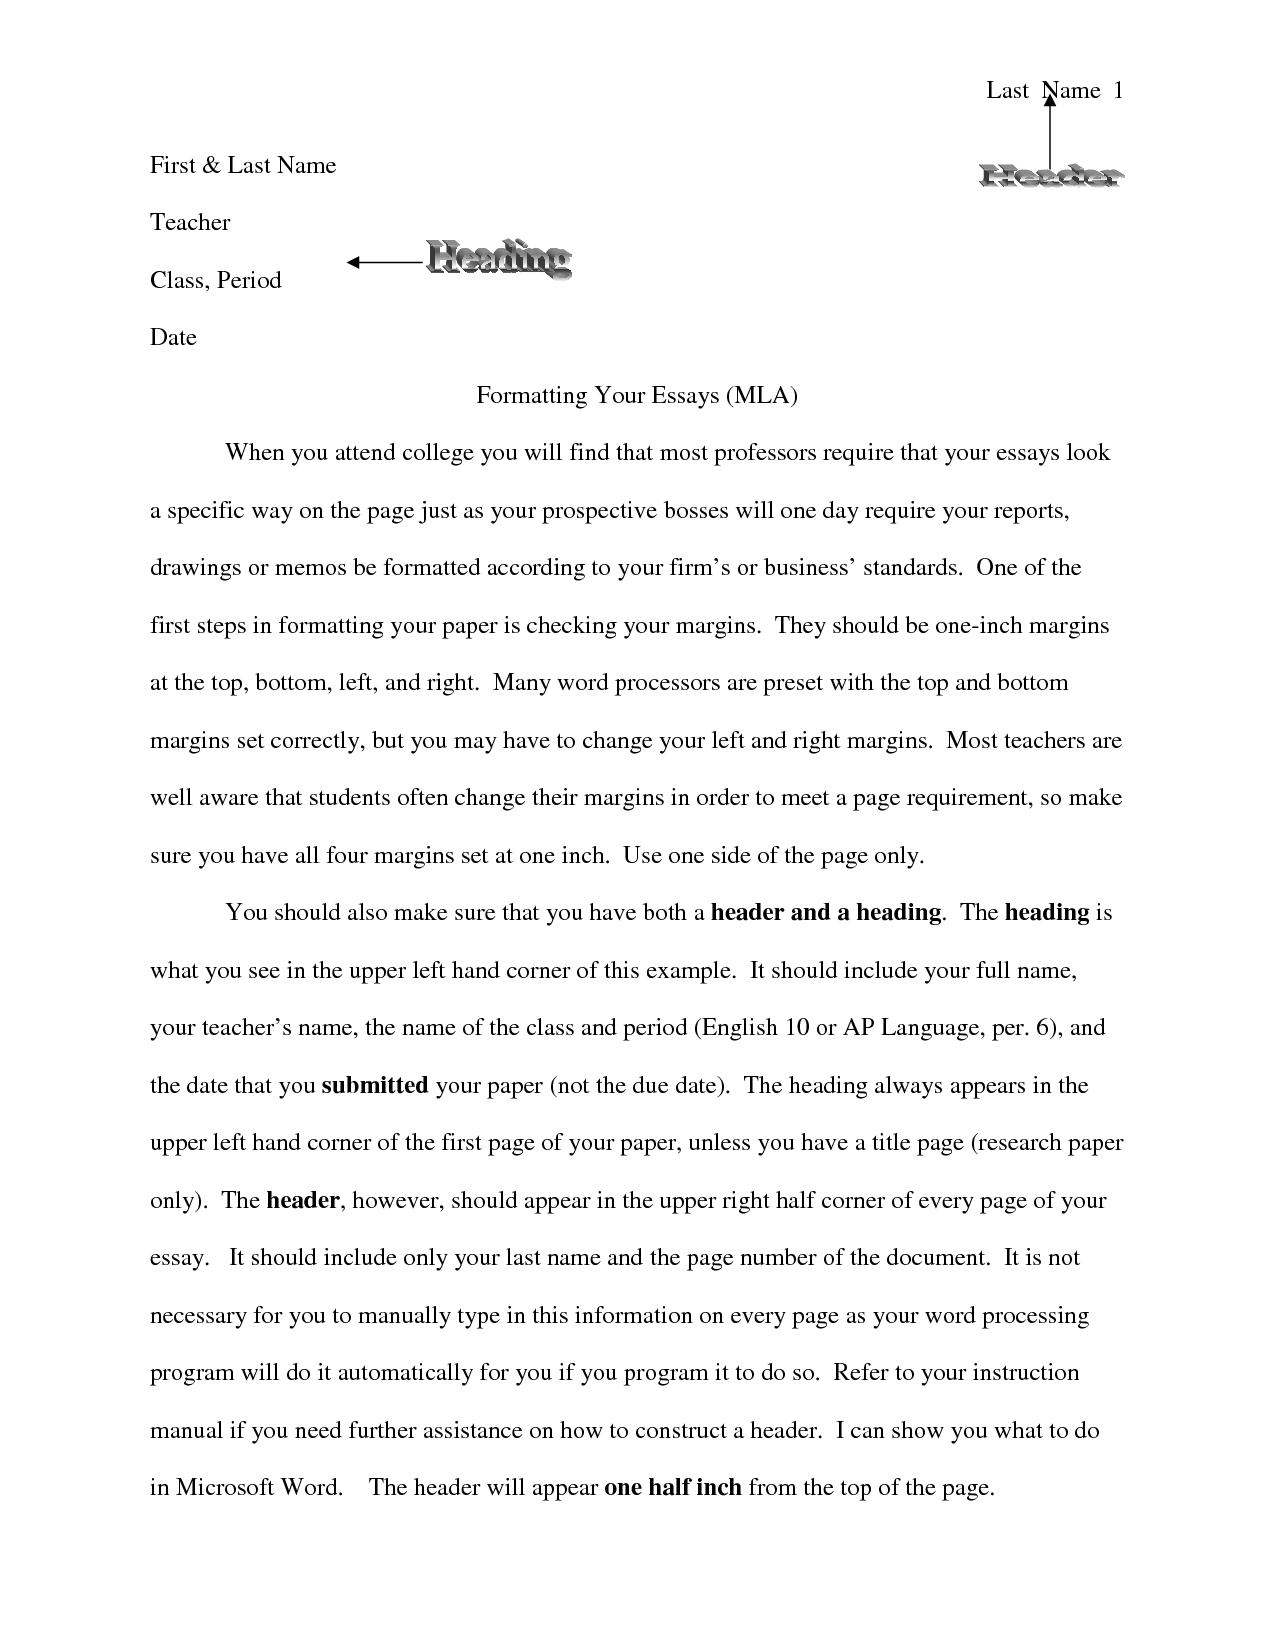 How To Write A Proposal Essay Format Of College Essay For An Application Golmdnsfree Examples Essay And Paper  College Essay Heading Examples How To Make A Thesis Statement For An Essay also Healthy Living Essay Choice Of A Career Essay Curriculum Vitae Resume Samples For  Pmr English Essay